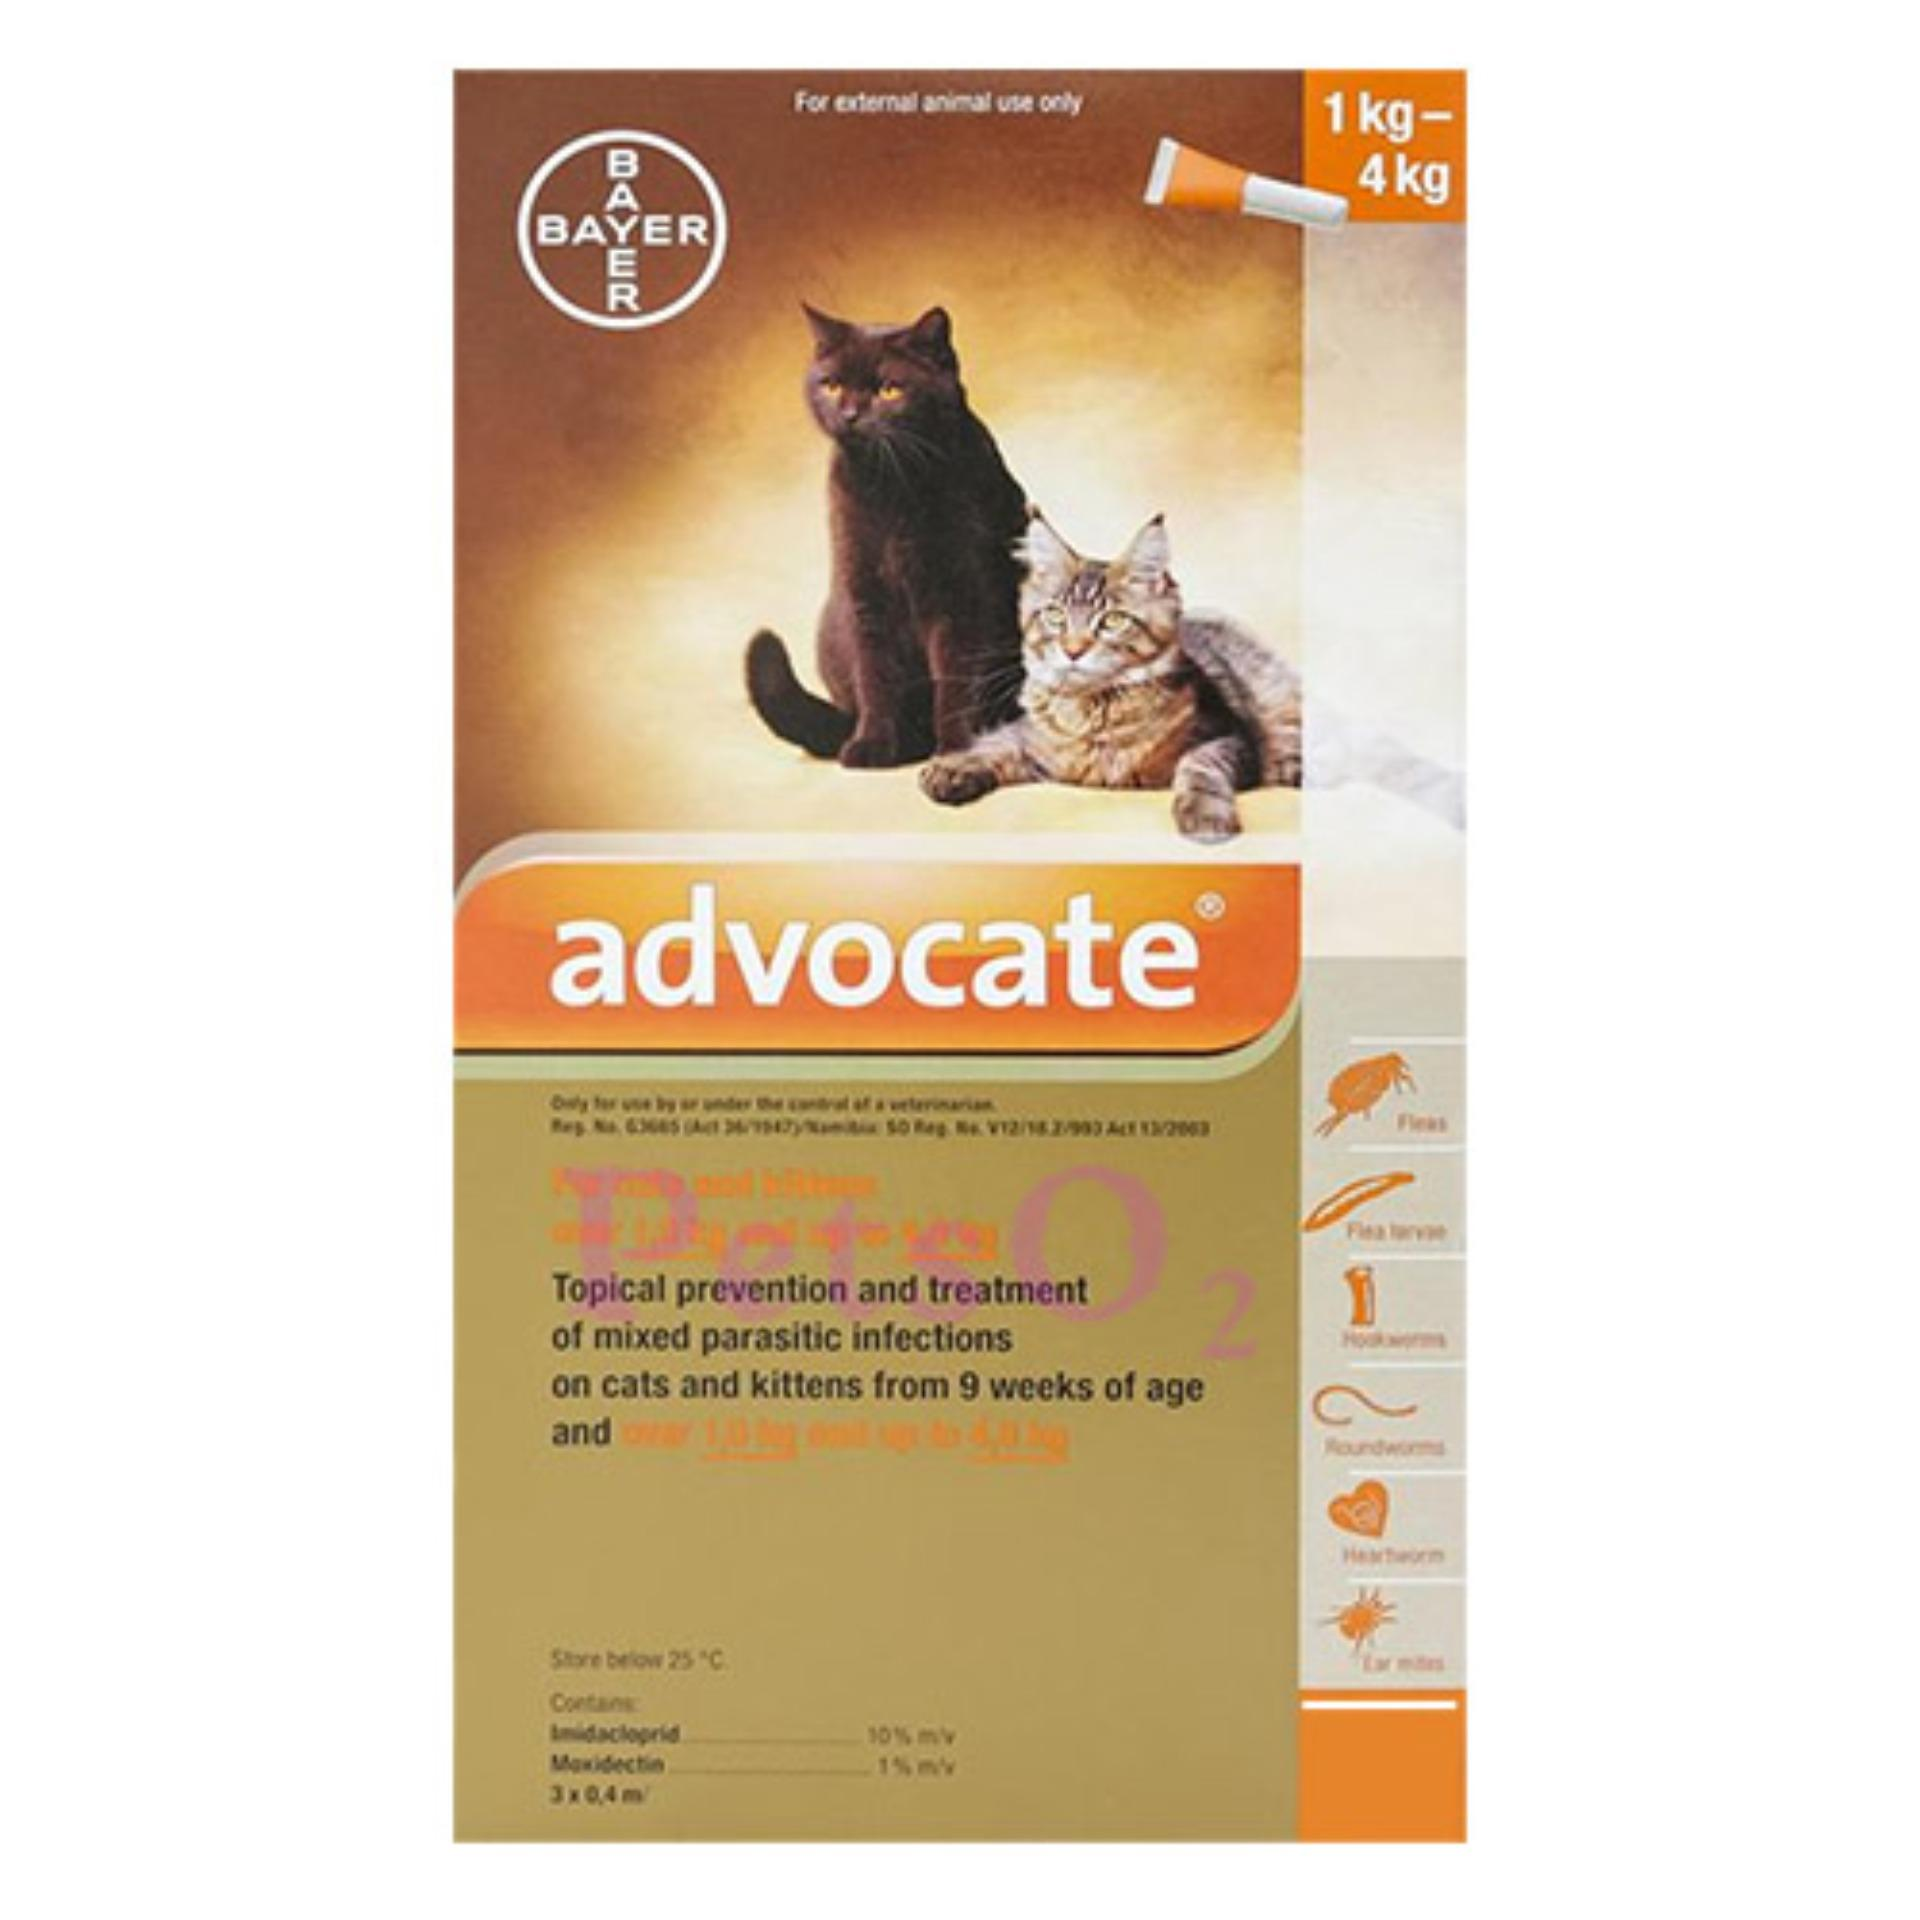 Bayer Advocate Flea And Heartworm Treatment For Cats (1 - 4kg) By Petso2.